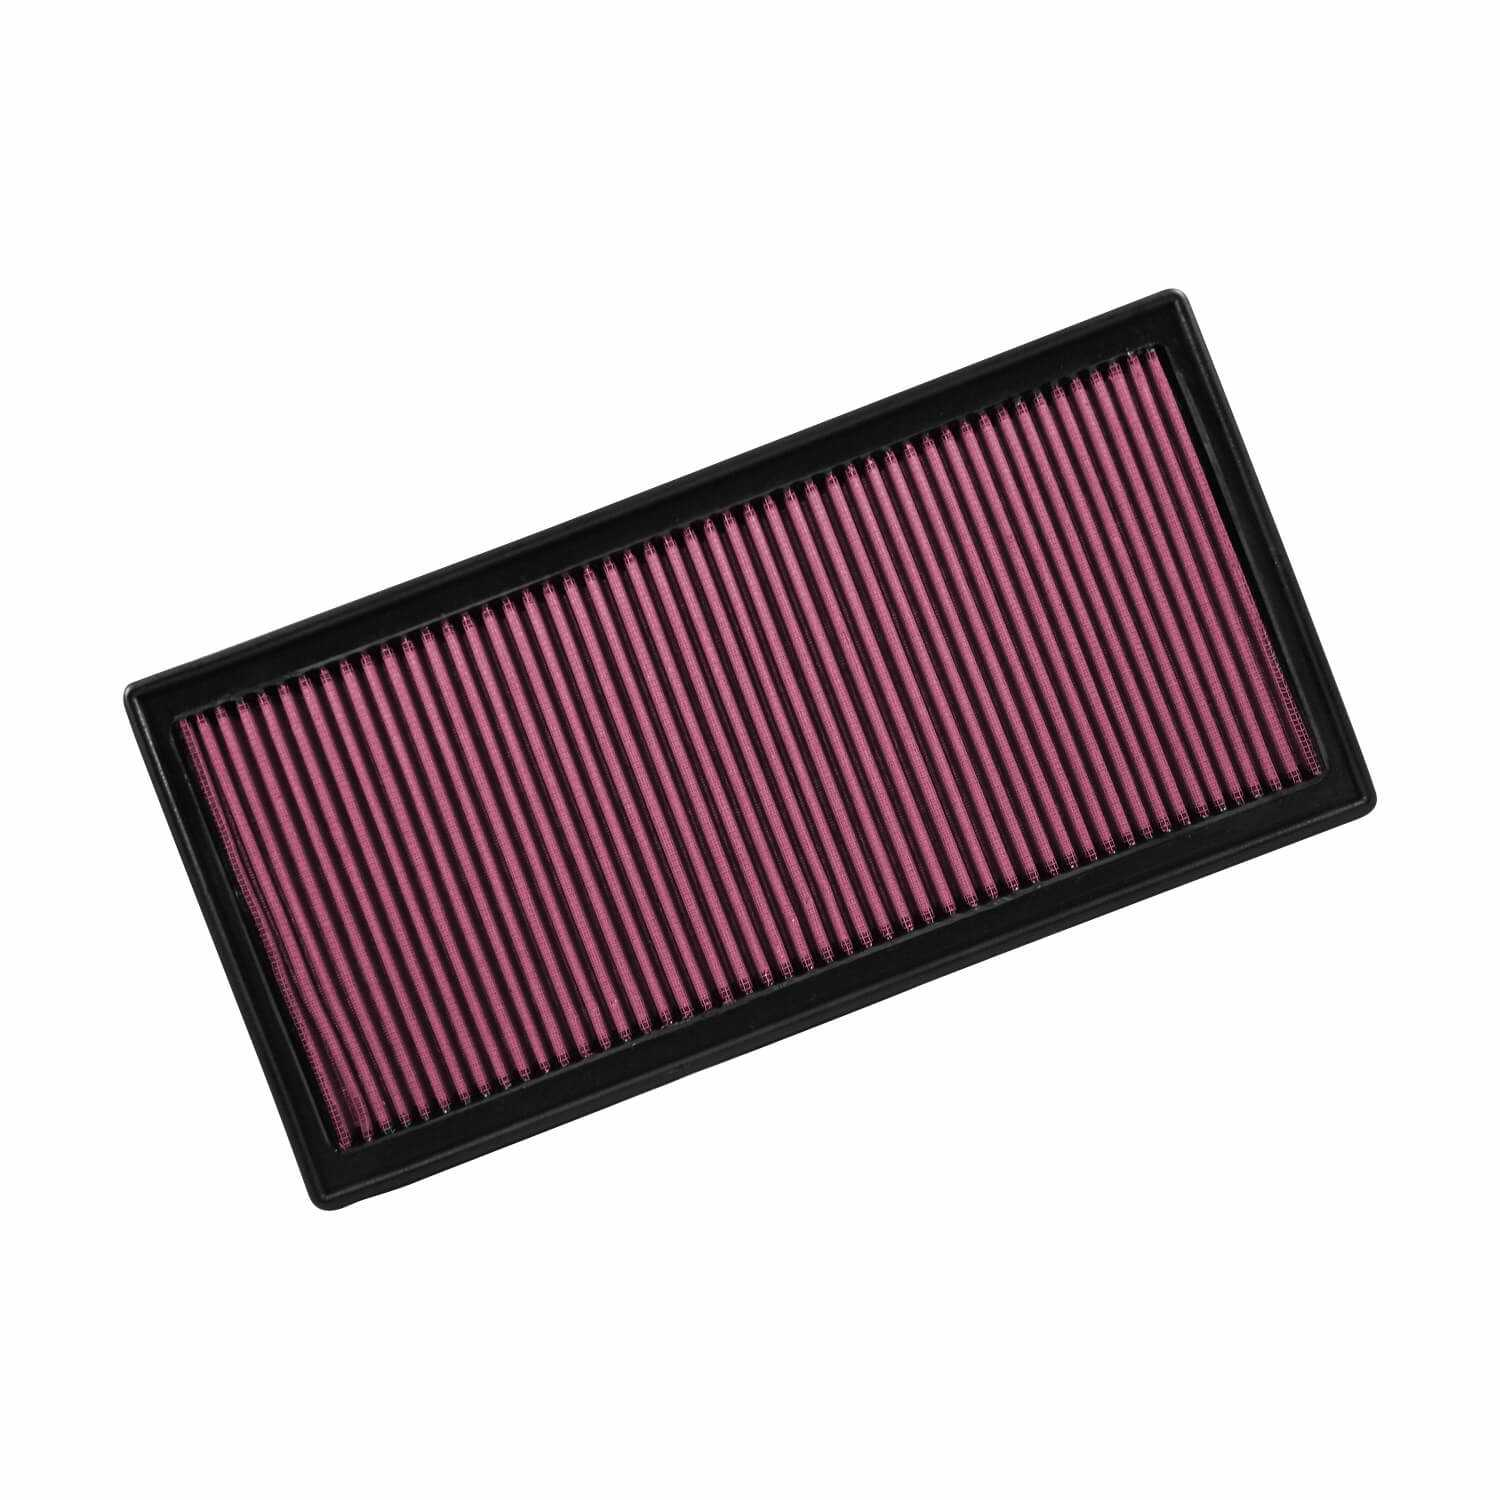 615030 Flowmaster Delta Force®Cold Air Intake Filter